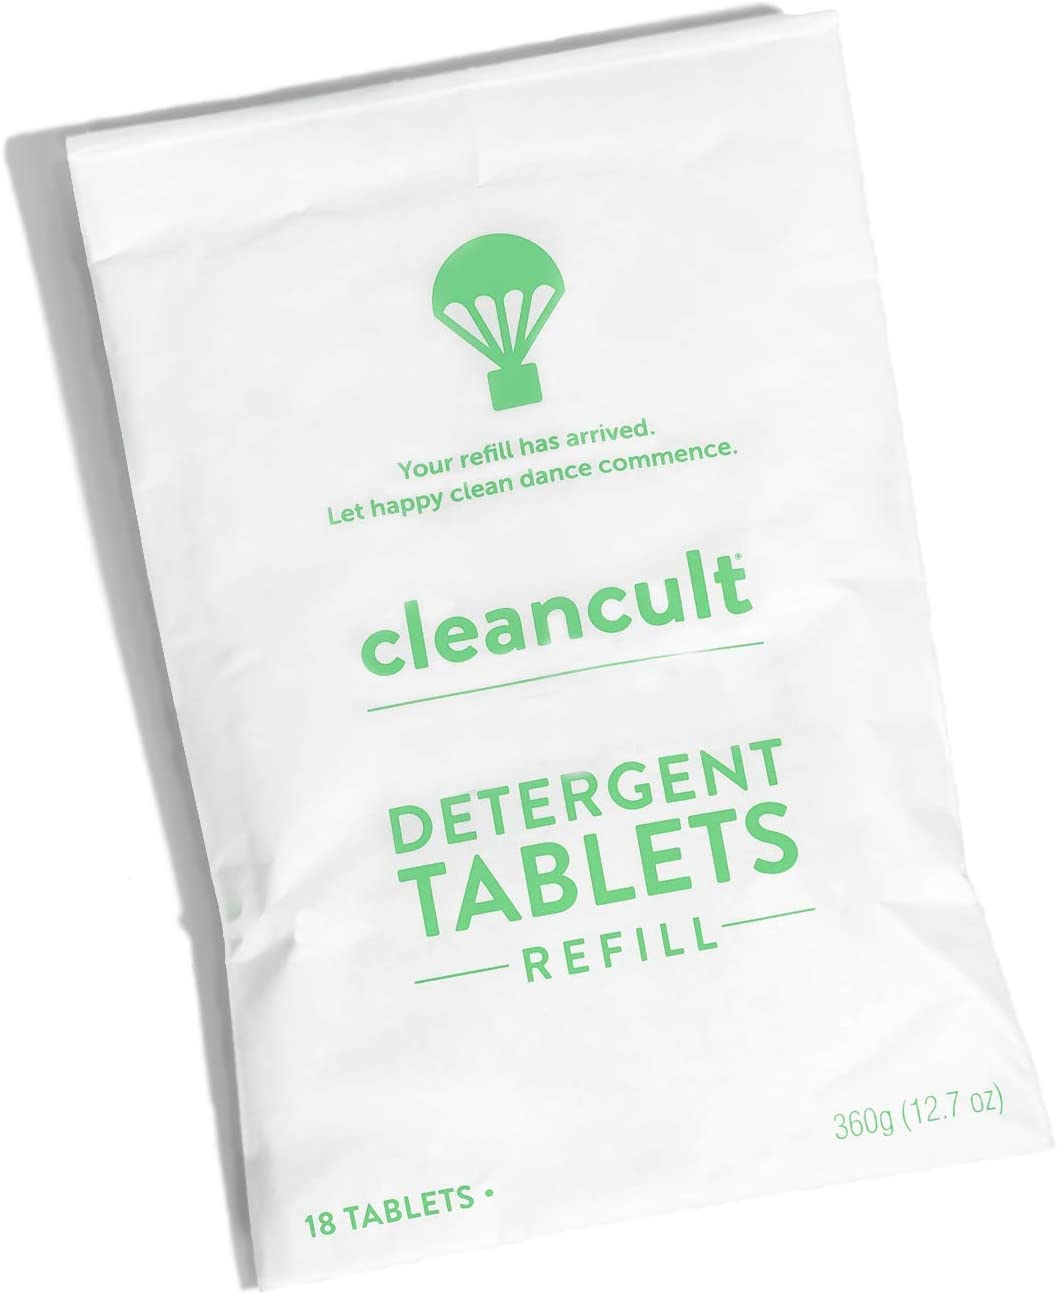 cleacult - Dishwasher Detergent PAPER MAILER REFILL (18 Tablets) - Eco Friendly Dish Tabs - Powerful Clean - Plant and Mineral Derived - Biodegradable - Lemongrass Fragrance